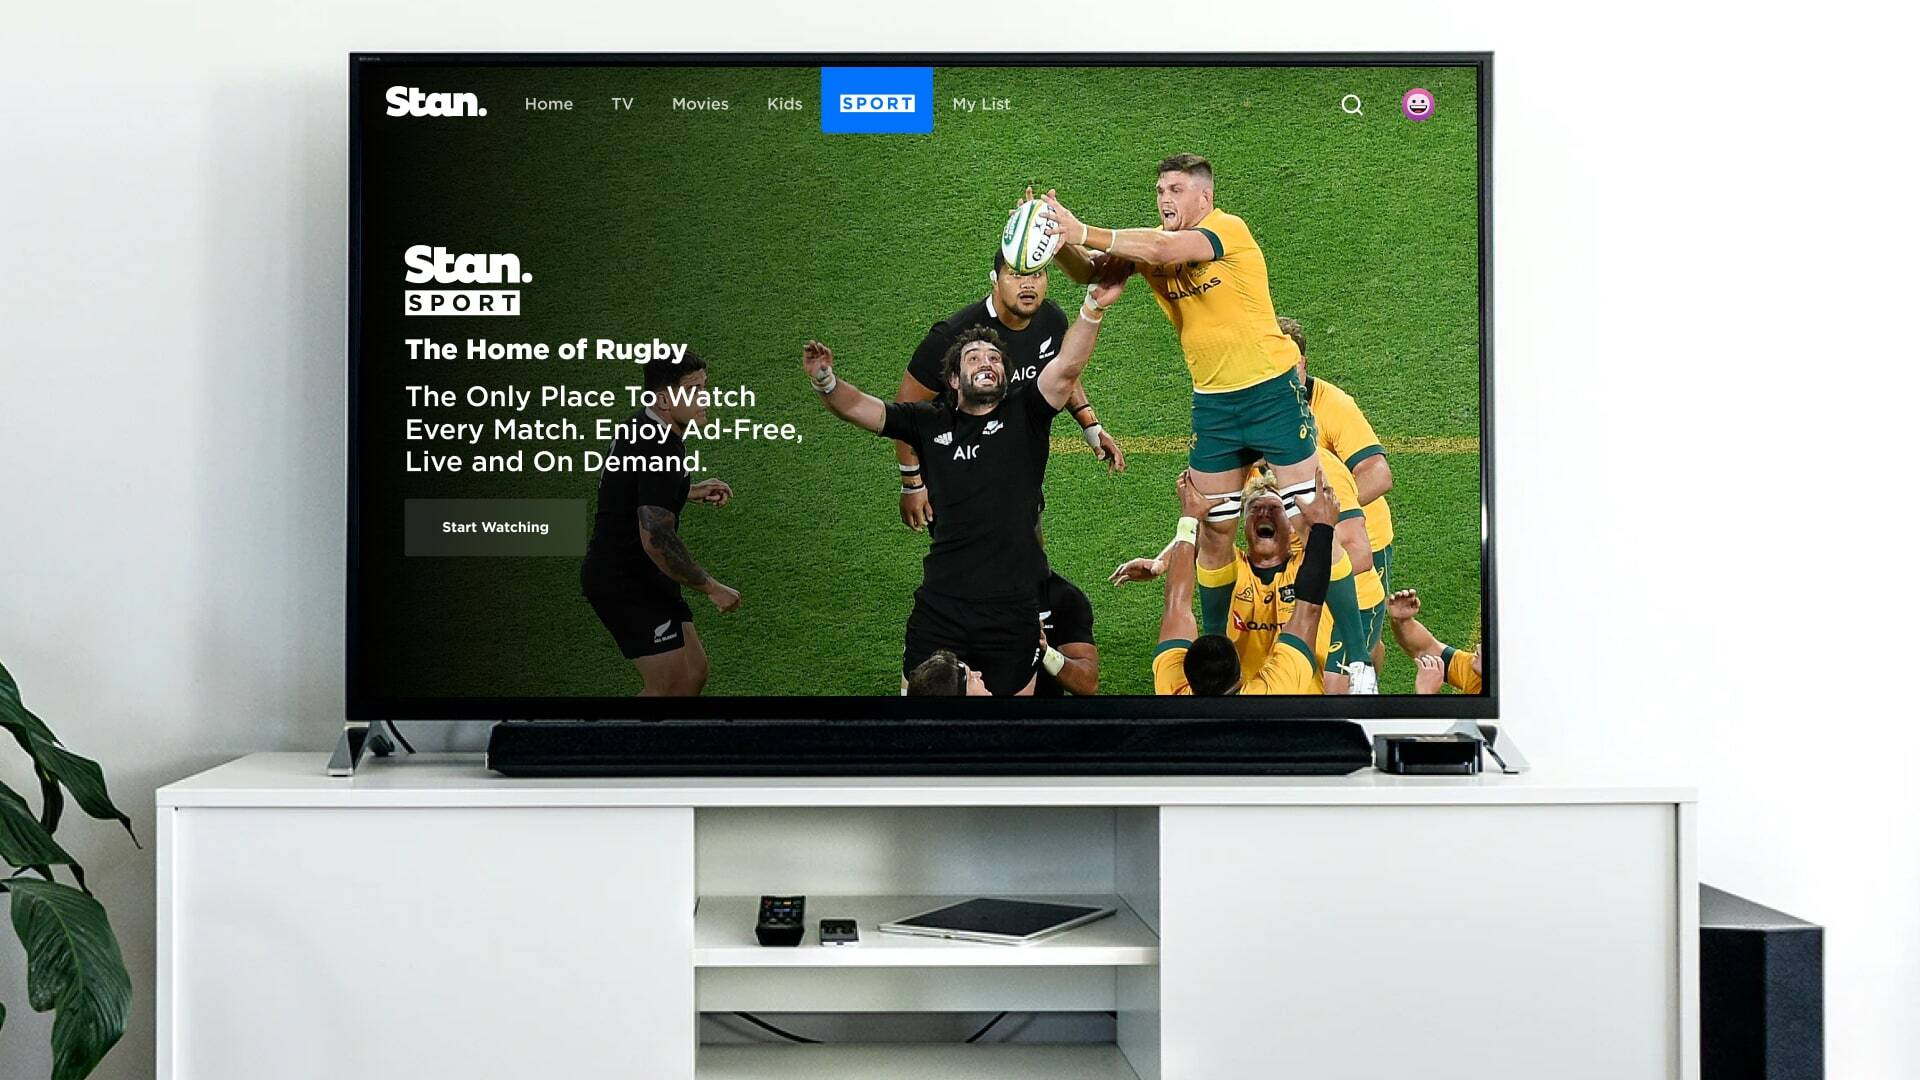 Stan Sport is the Home of Rugby